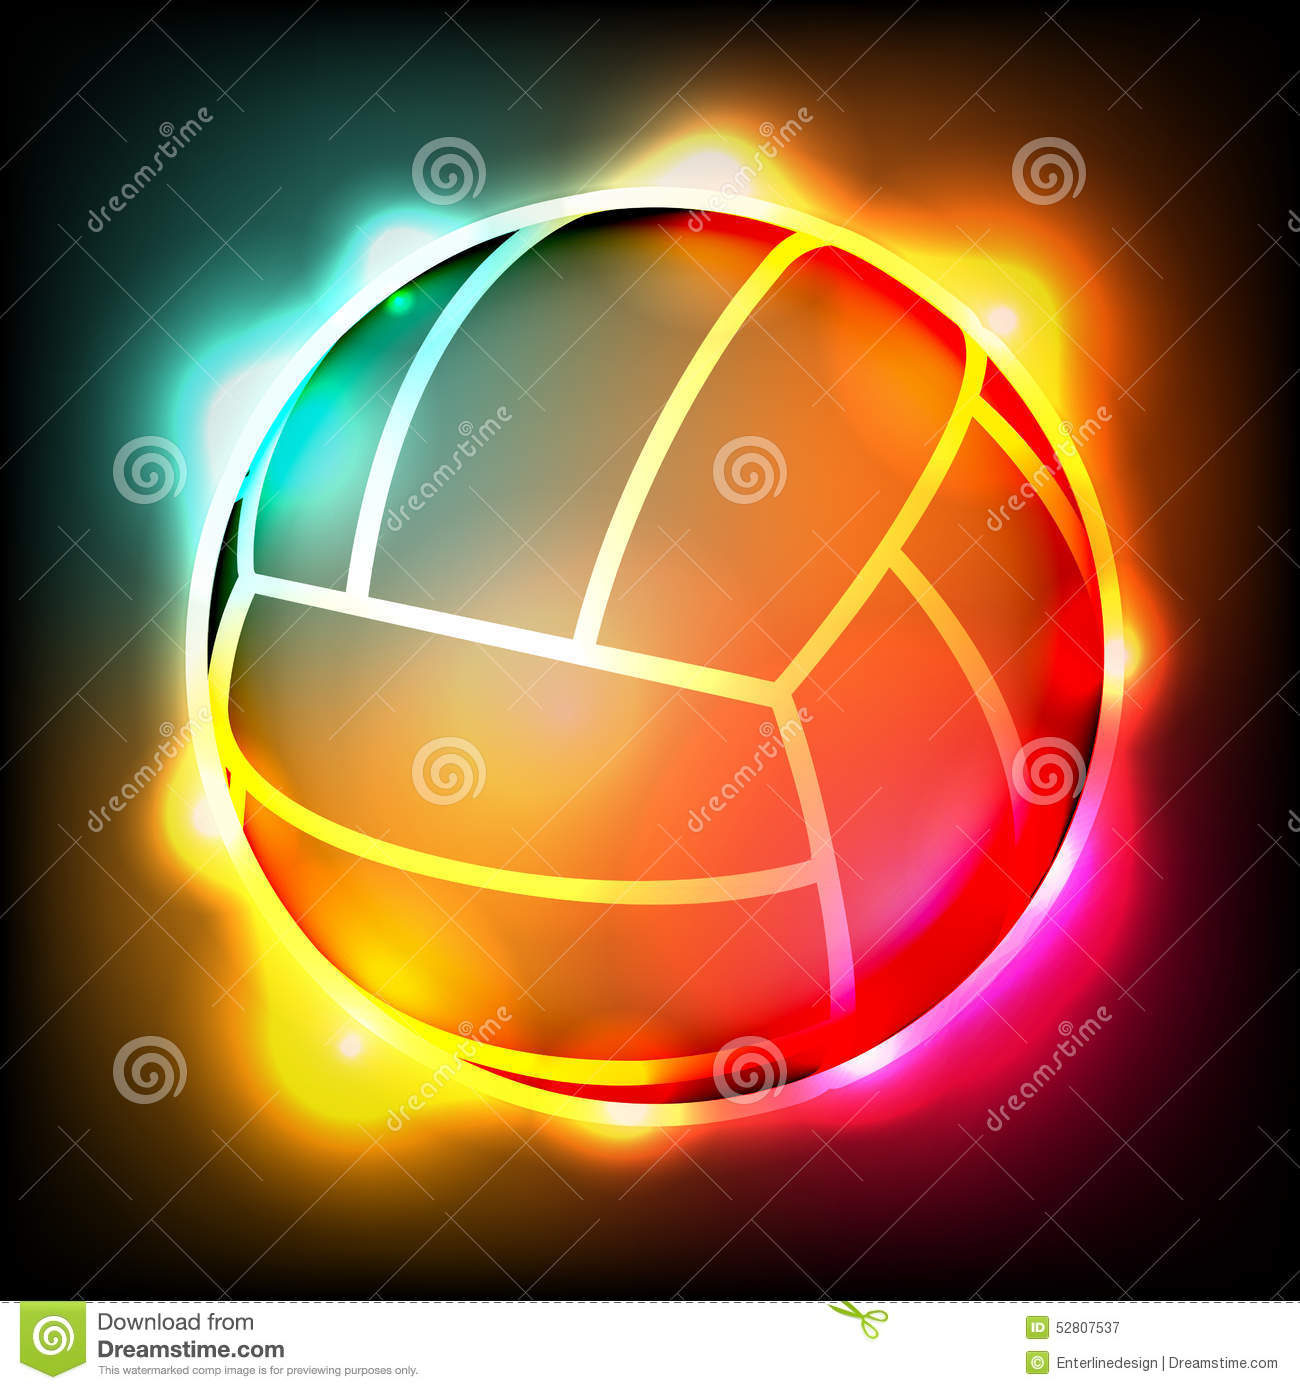 Glowing Colorful Volleyball Illustration Stock Vector